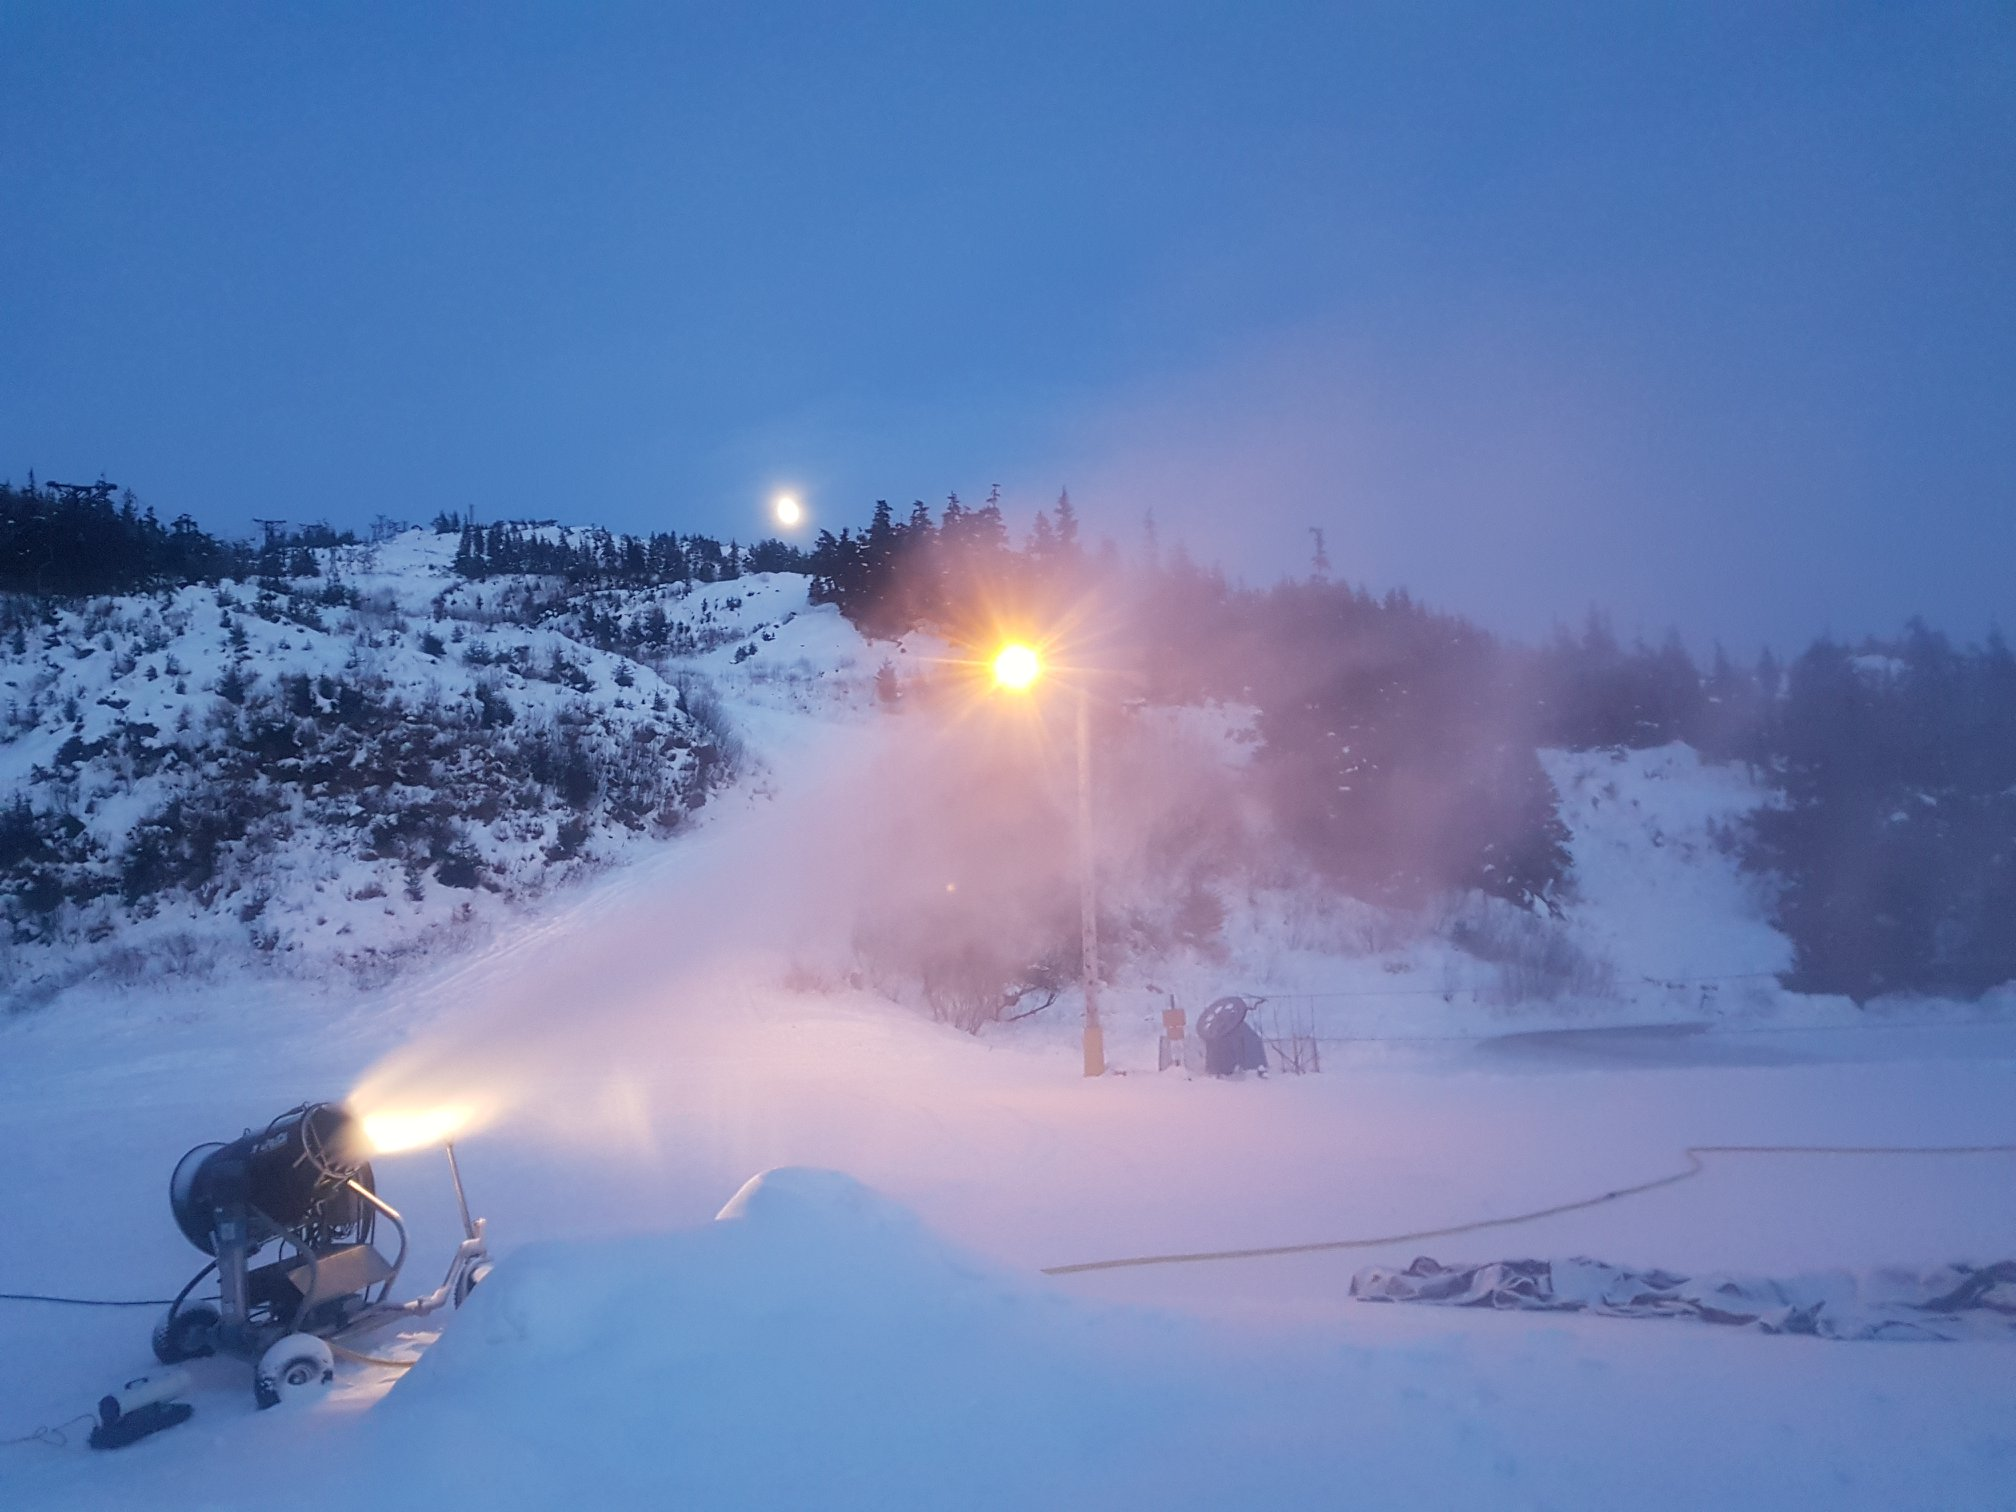 Latest Info - What's happening on the mountain right now?